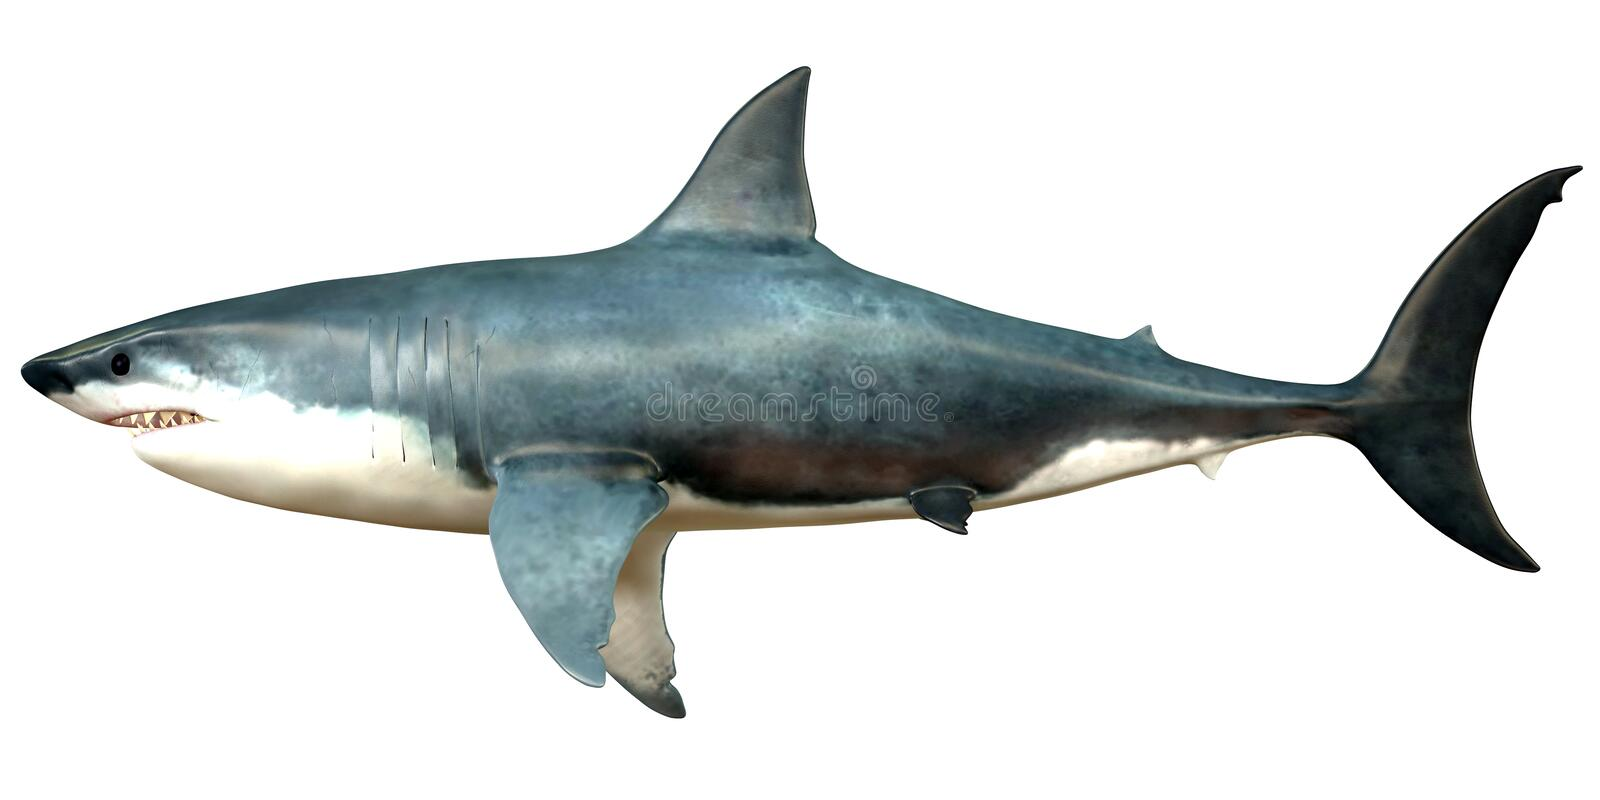 the characteristics of the megalodon an extinct shark species It became extinct as the world grew colder and whales spent more time in the  1  content list 2 genera and species 3 characteristics 4 size  the great white  shark is the best modern model for megalodon behavior.